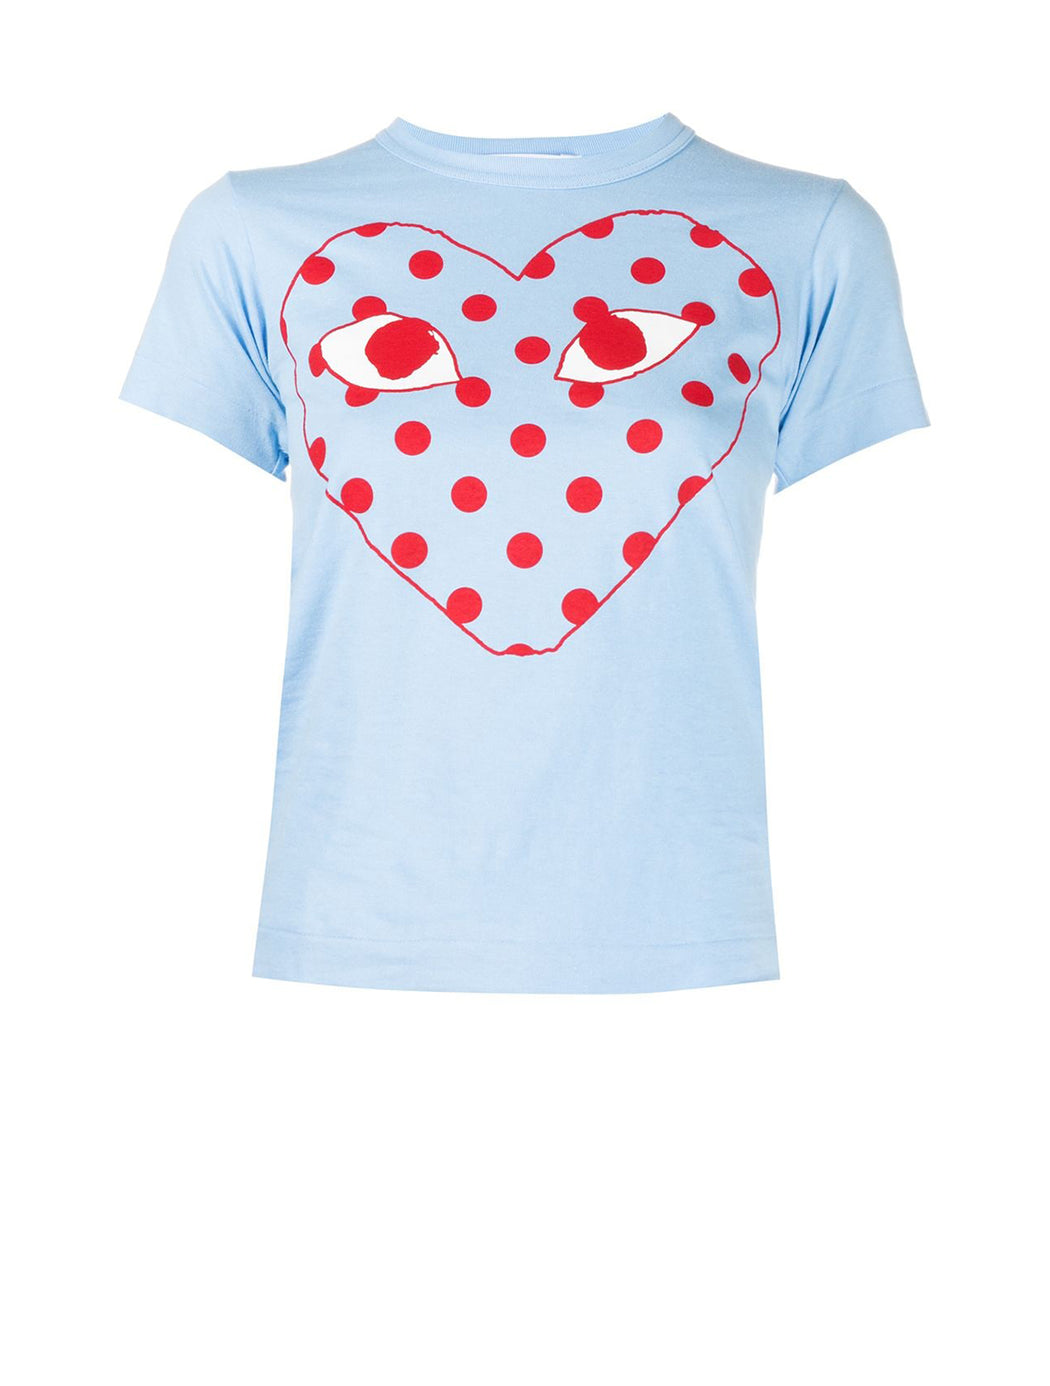 Bright Spotted Heart T-Shirt